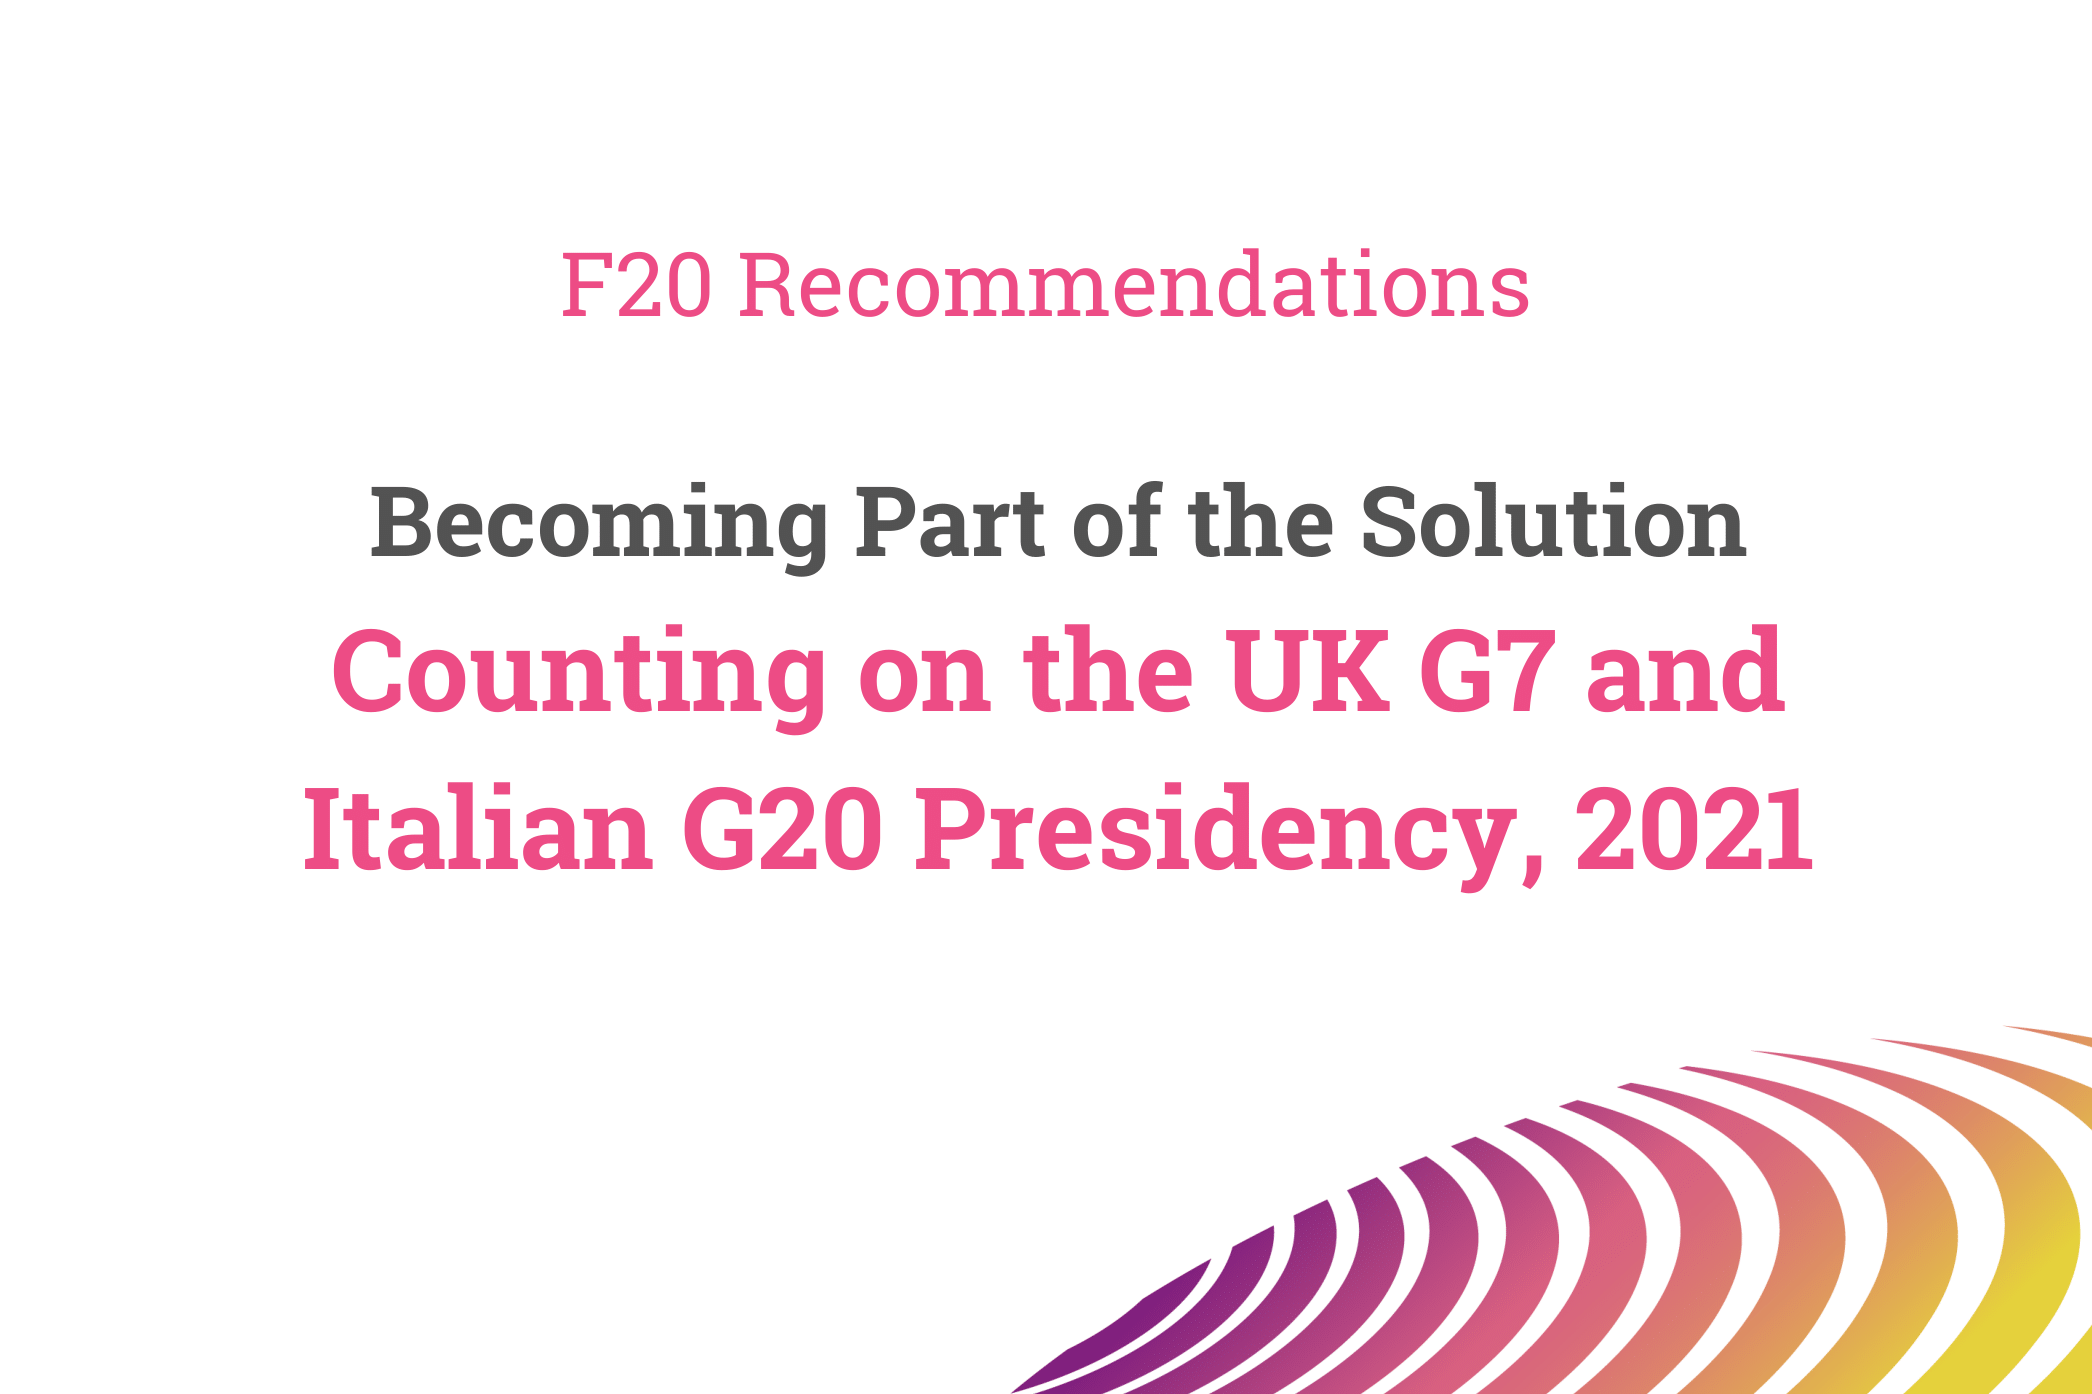 F20 Recommendations to the G7 & G20